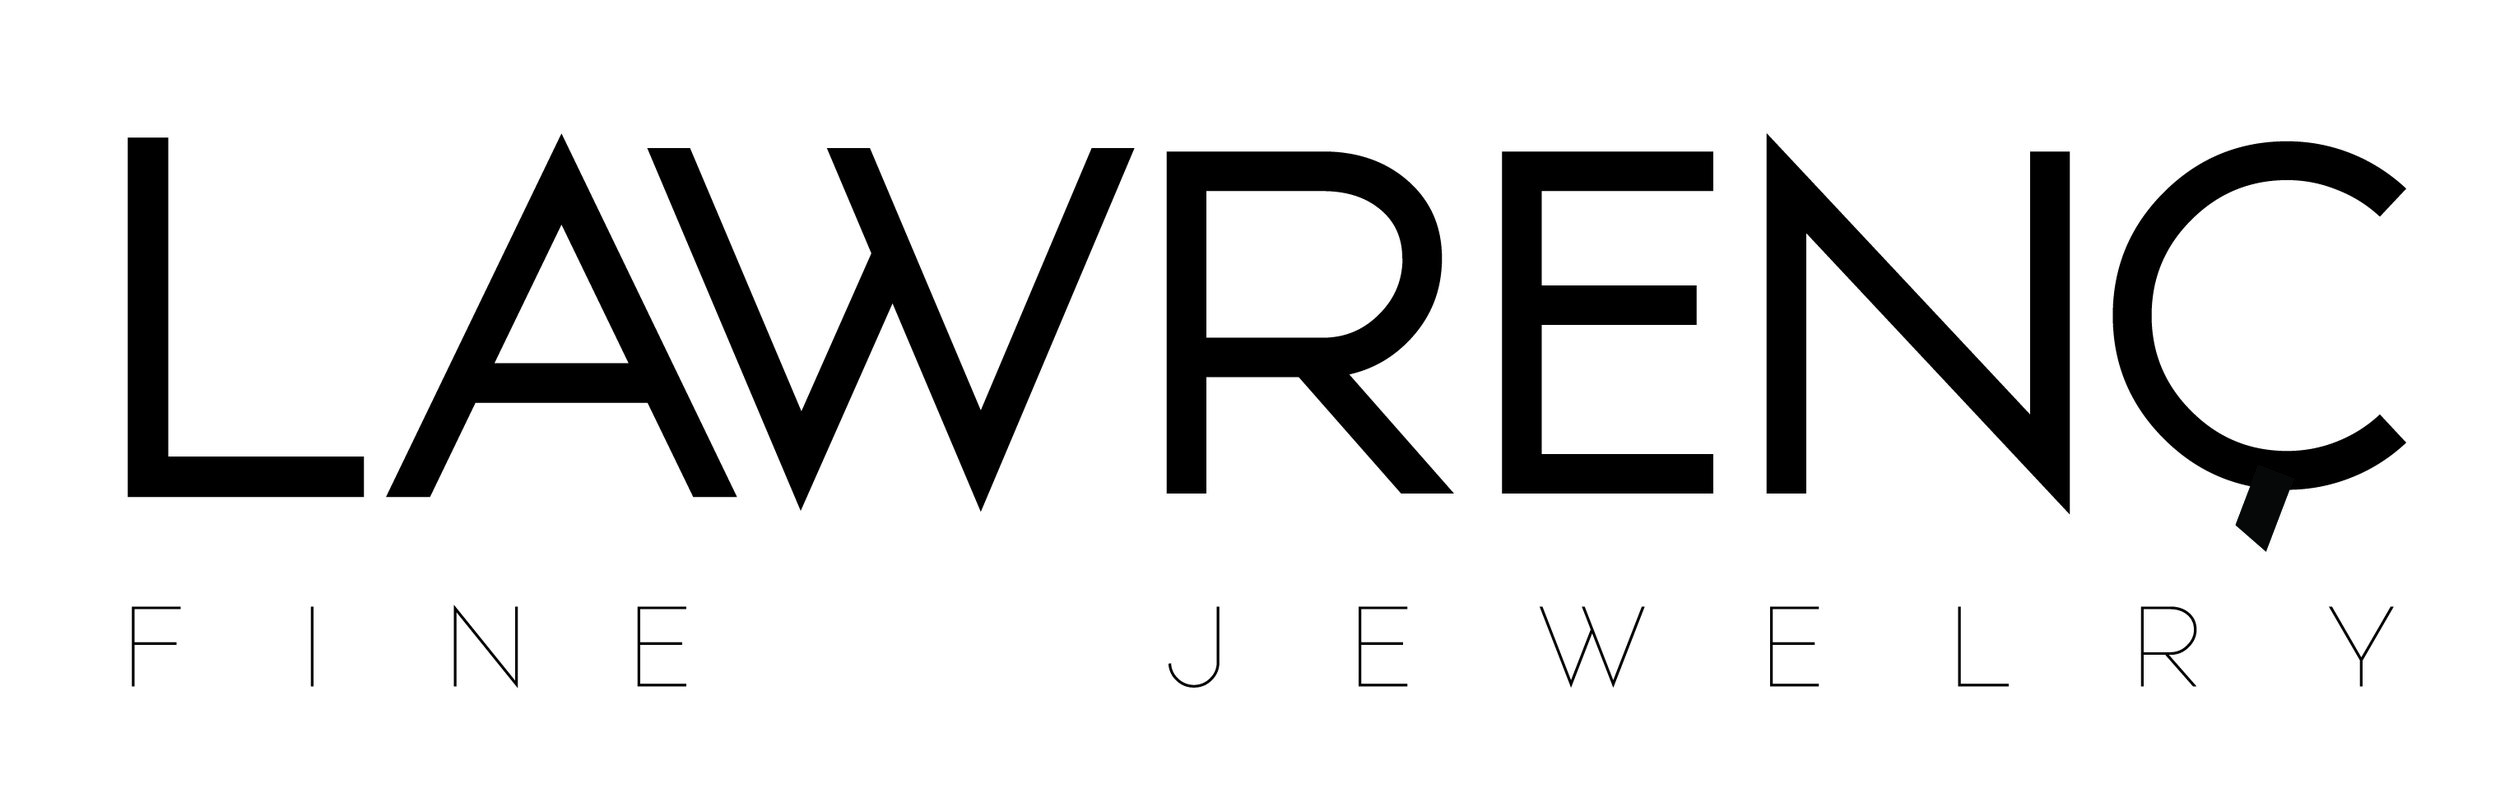 Lawrenc jewellery logo